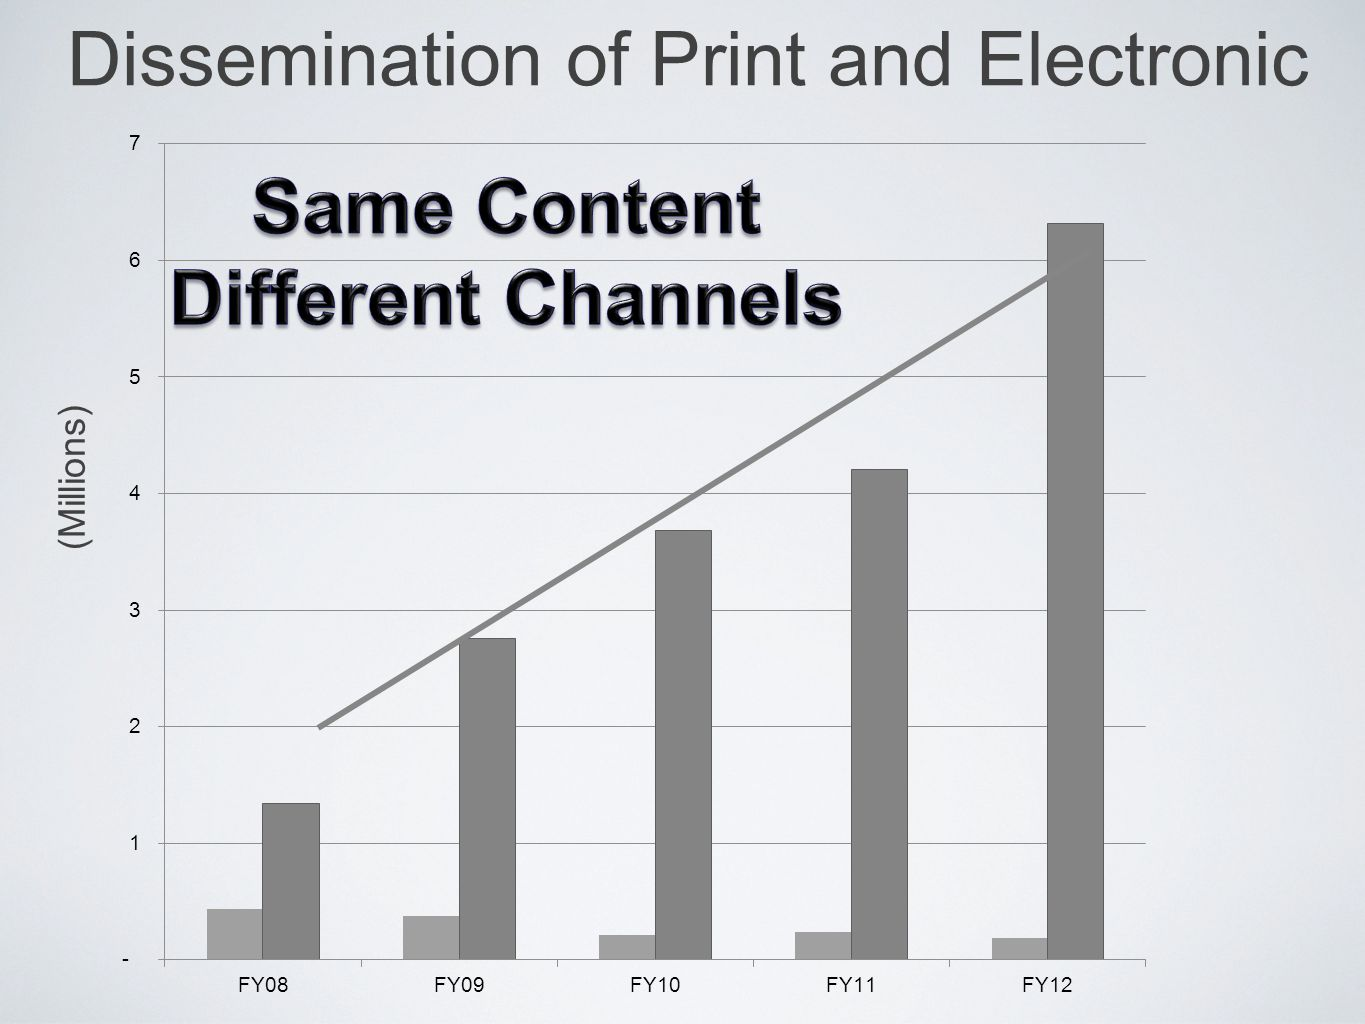 Dissemination of Print and Electronic